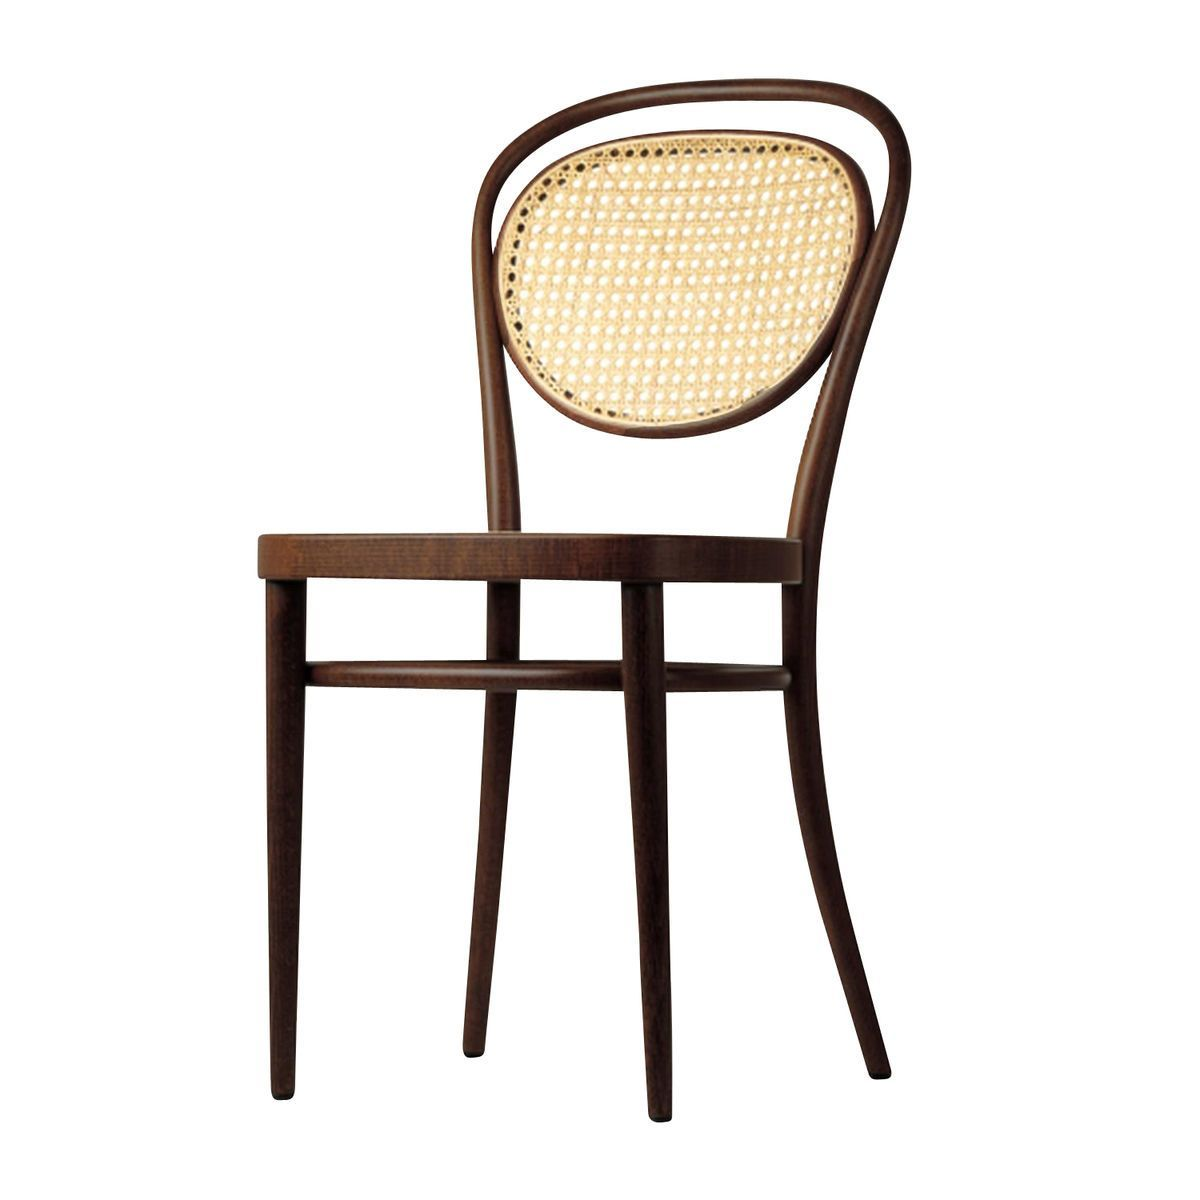 thonet 215 r chair thonet. Black Bedroom Furniture Sets. Home Design Ideas